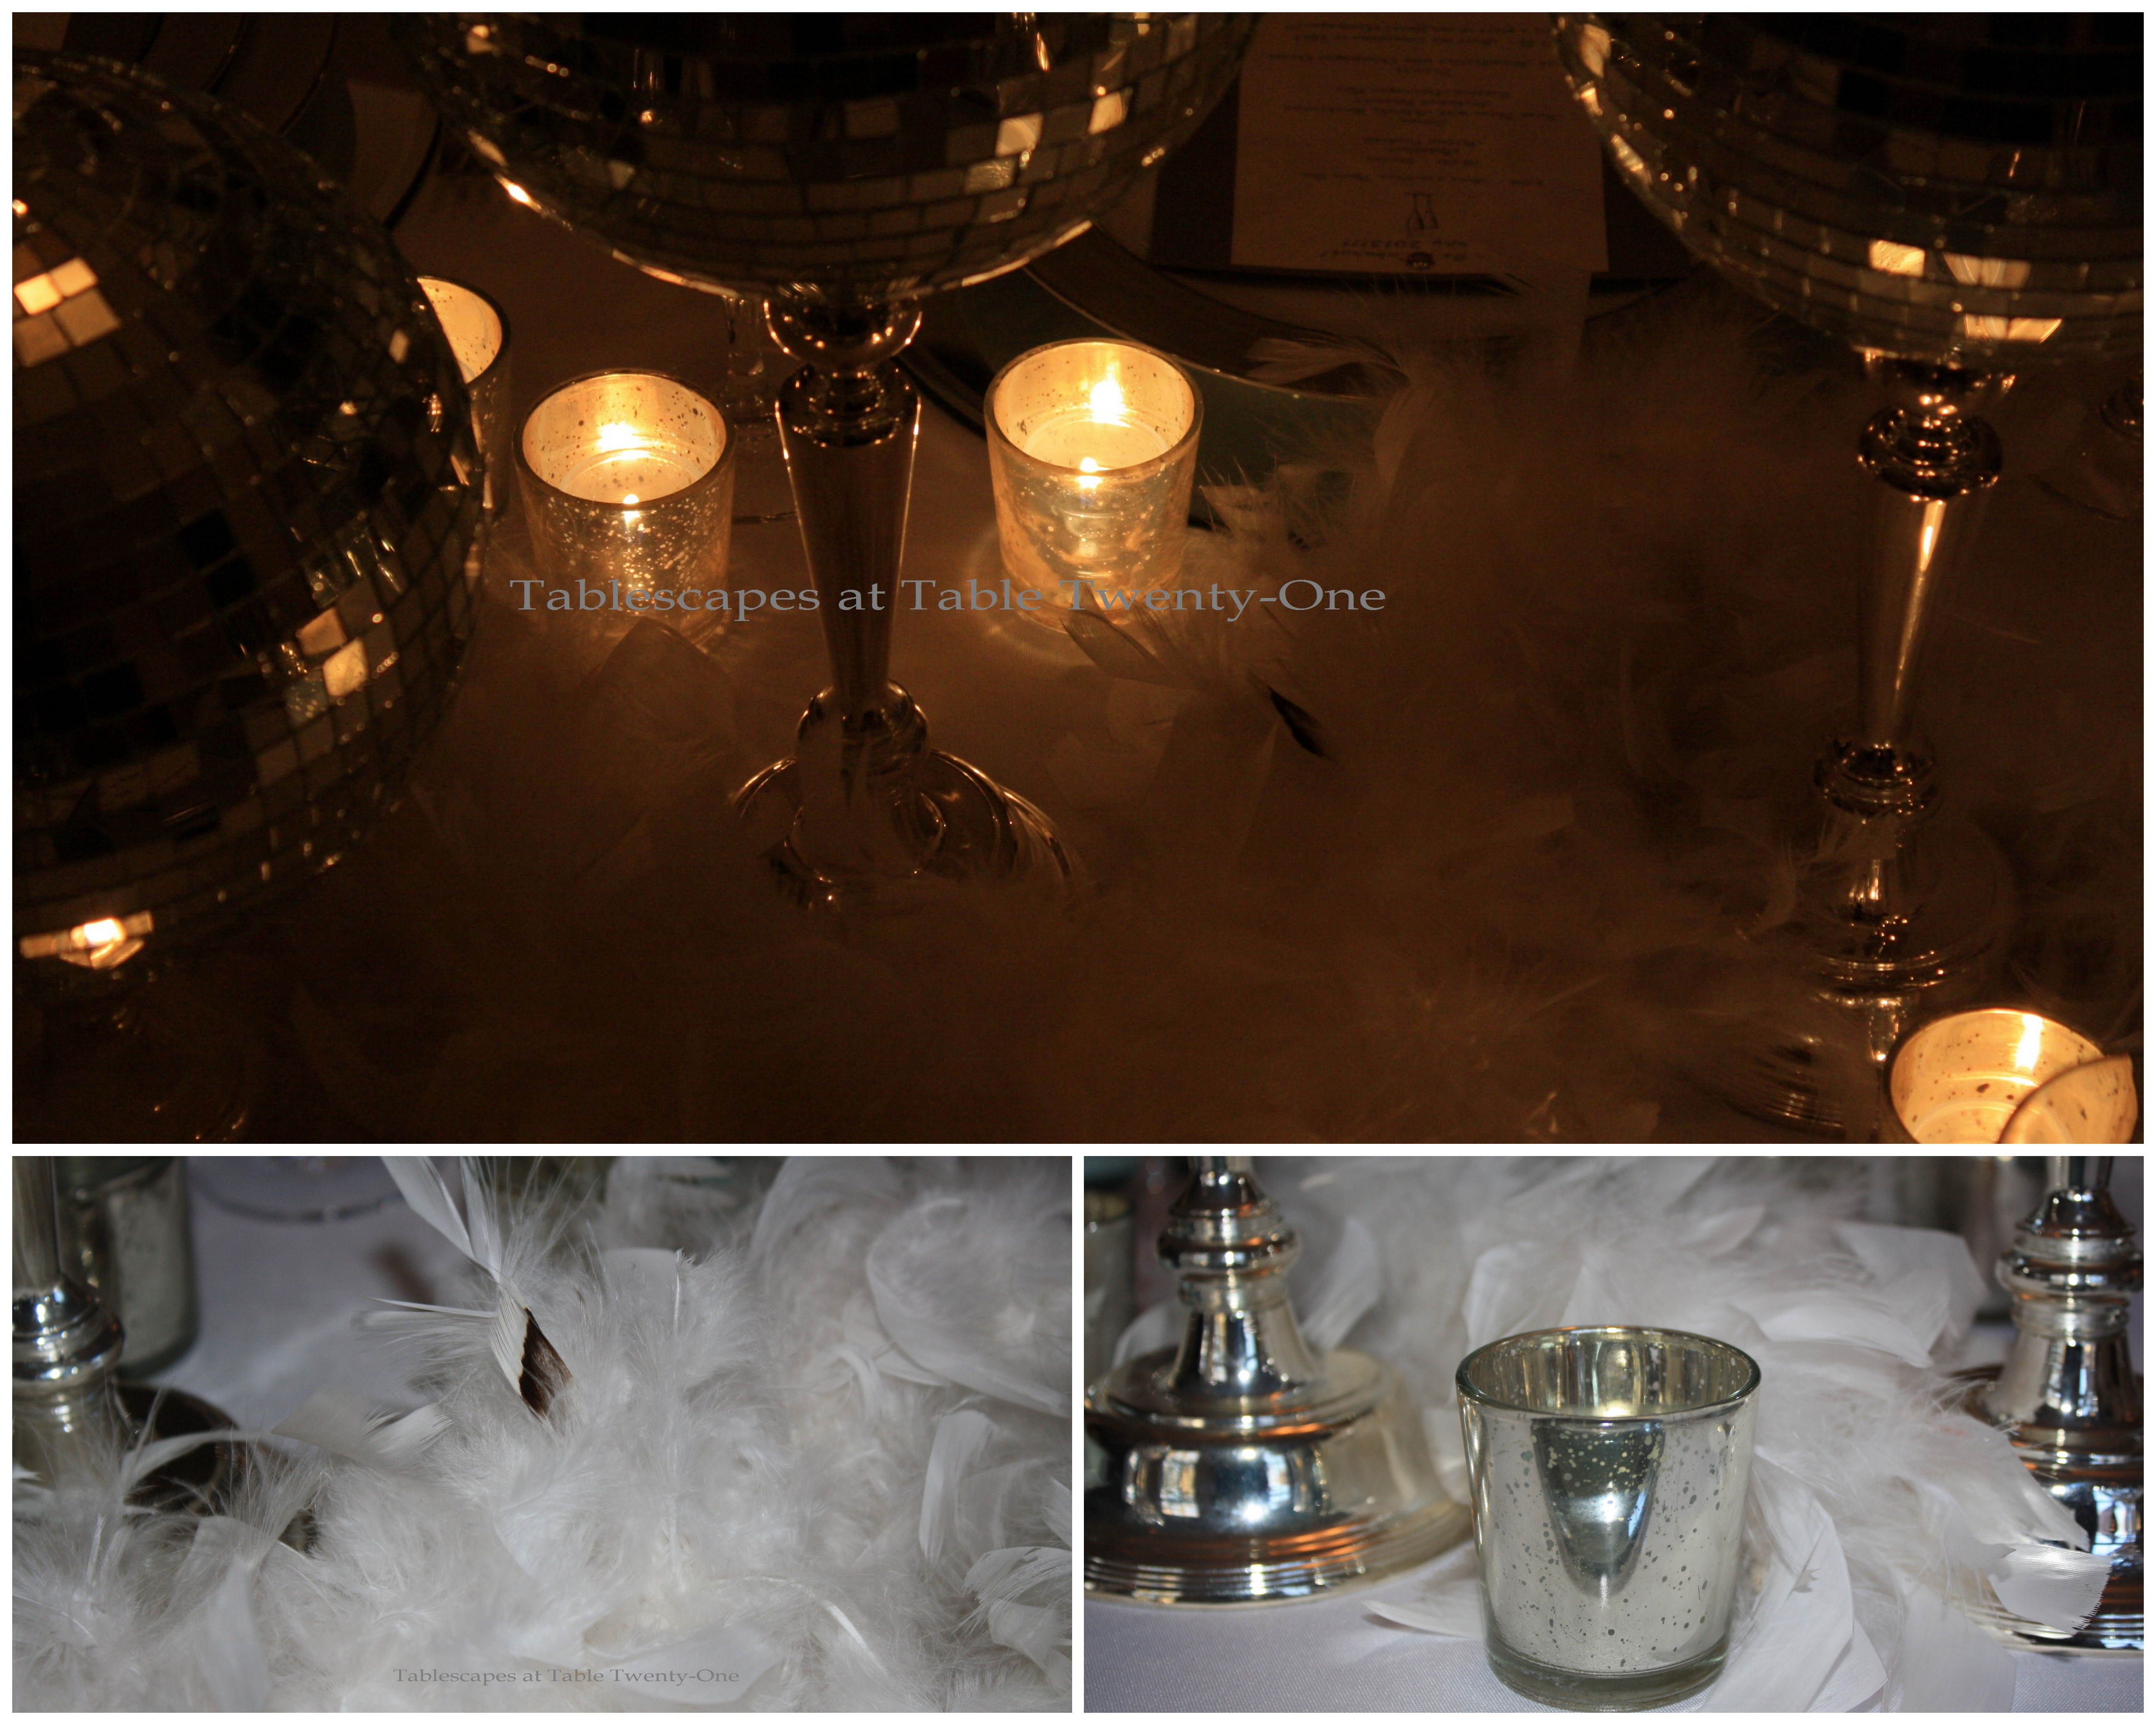 Feather boa & votive candle collage